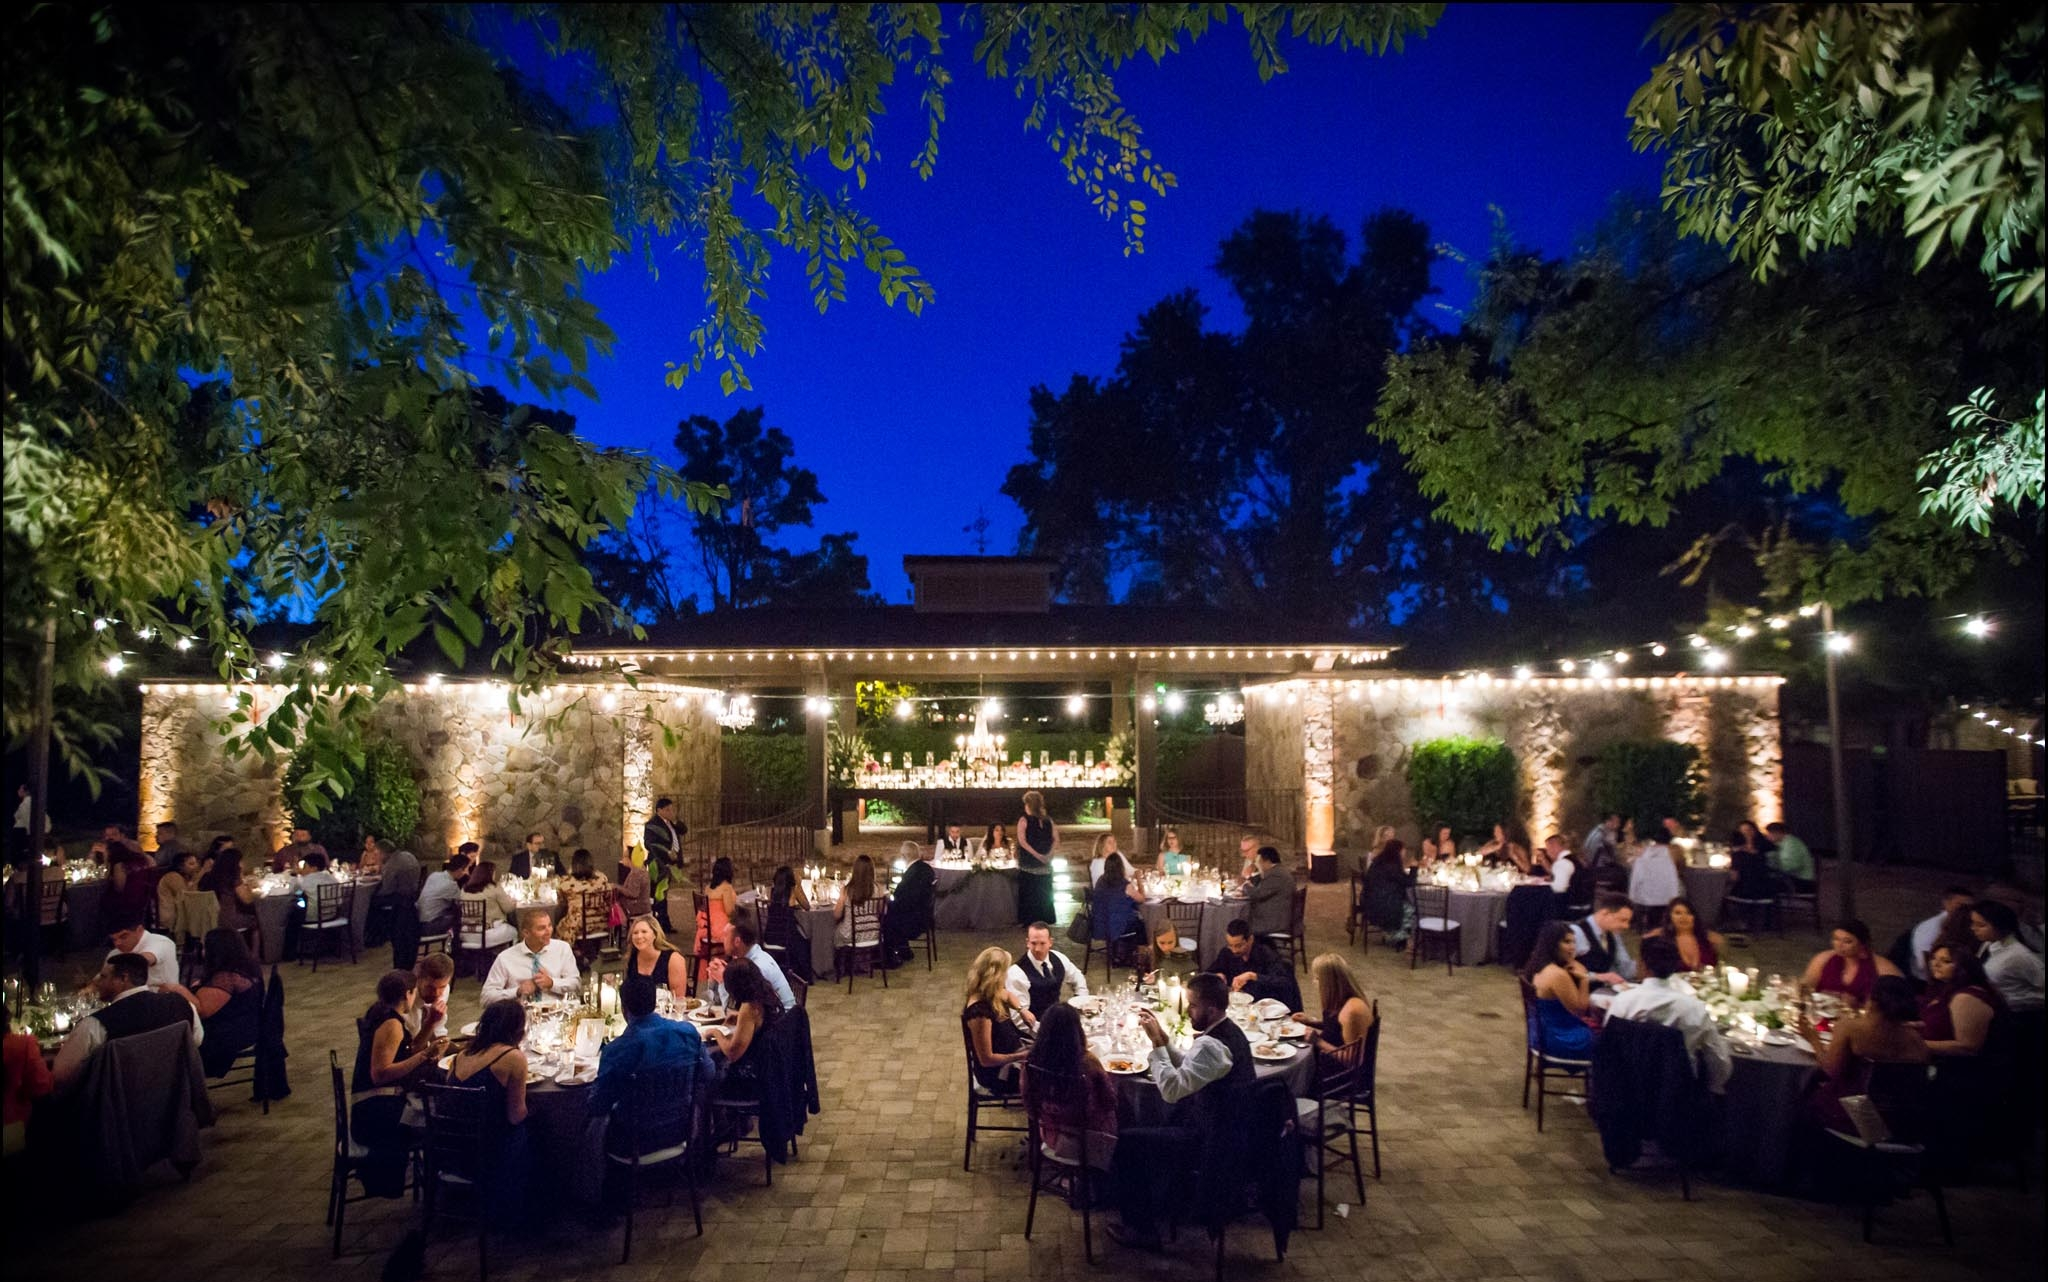 Wedding receptions in the Pavilion at The Estate Yountville. Photo by Christophe Genty Photography.